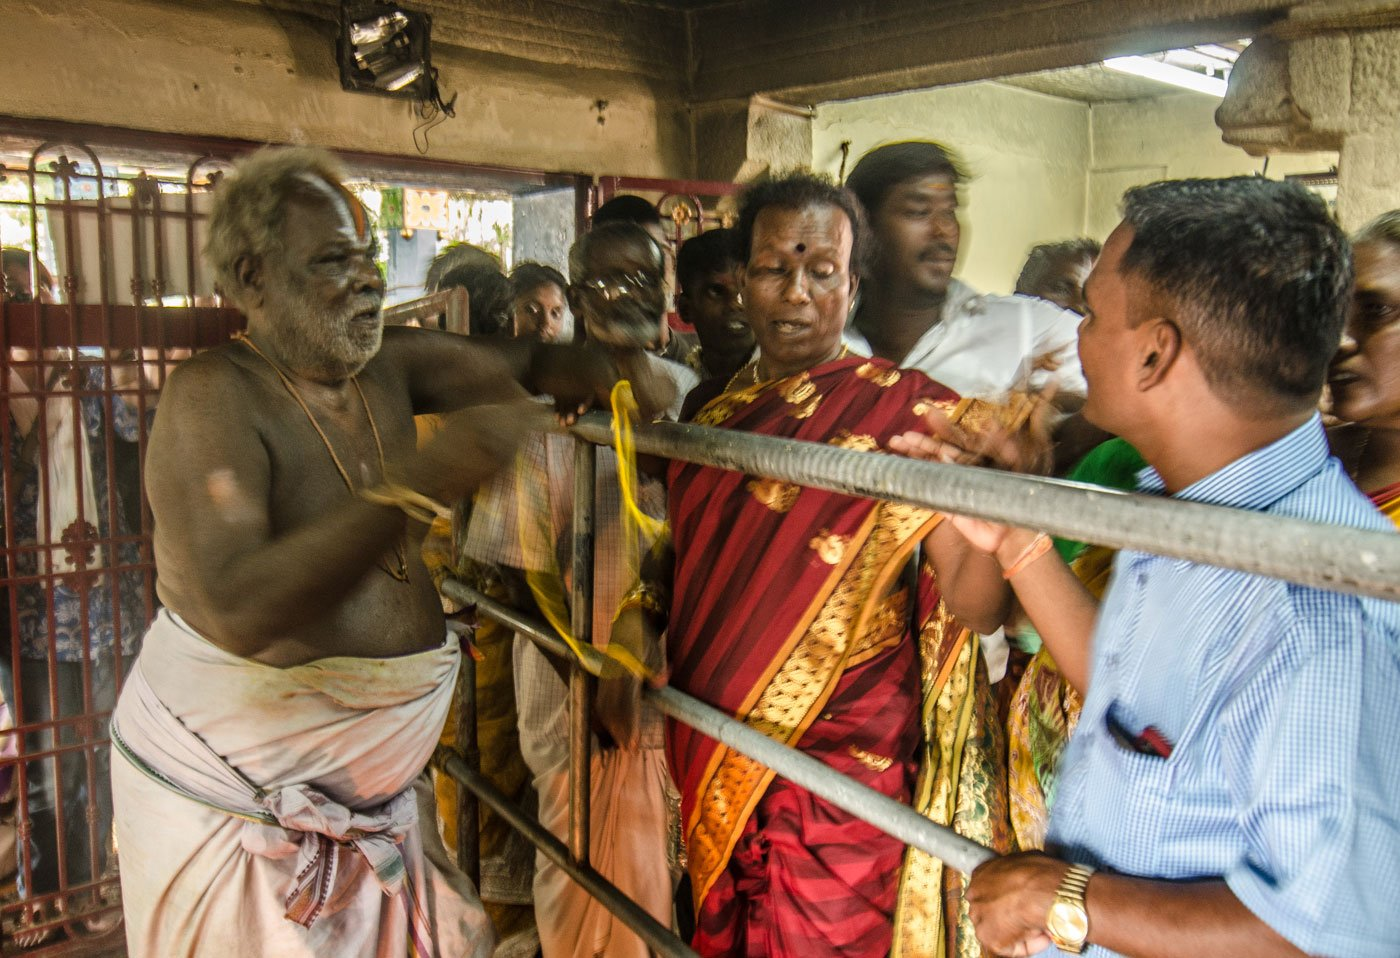 One of the priests at the Koothandavar temple begins the wedding rituals. He ties a yellow thread called thali around the neck of each aravani to consecrate her union with Aravan.